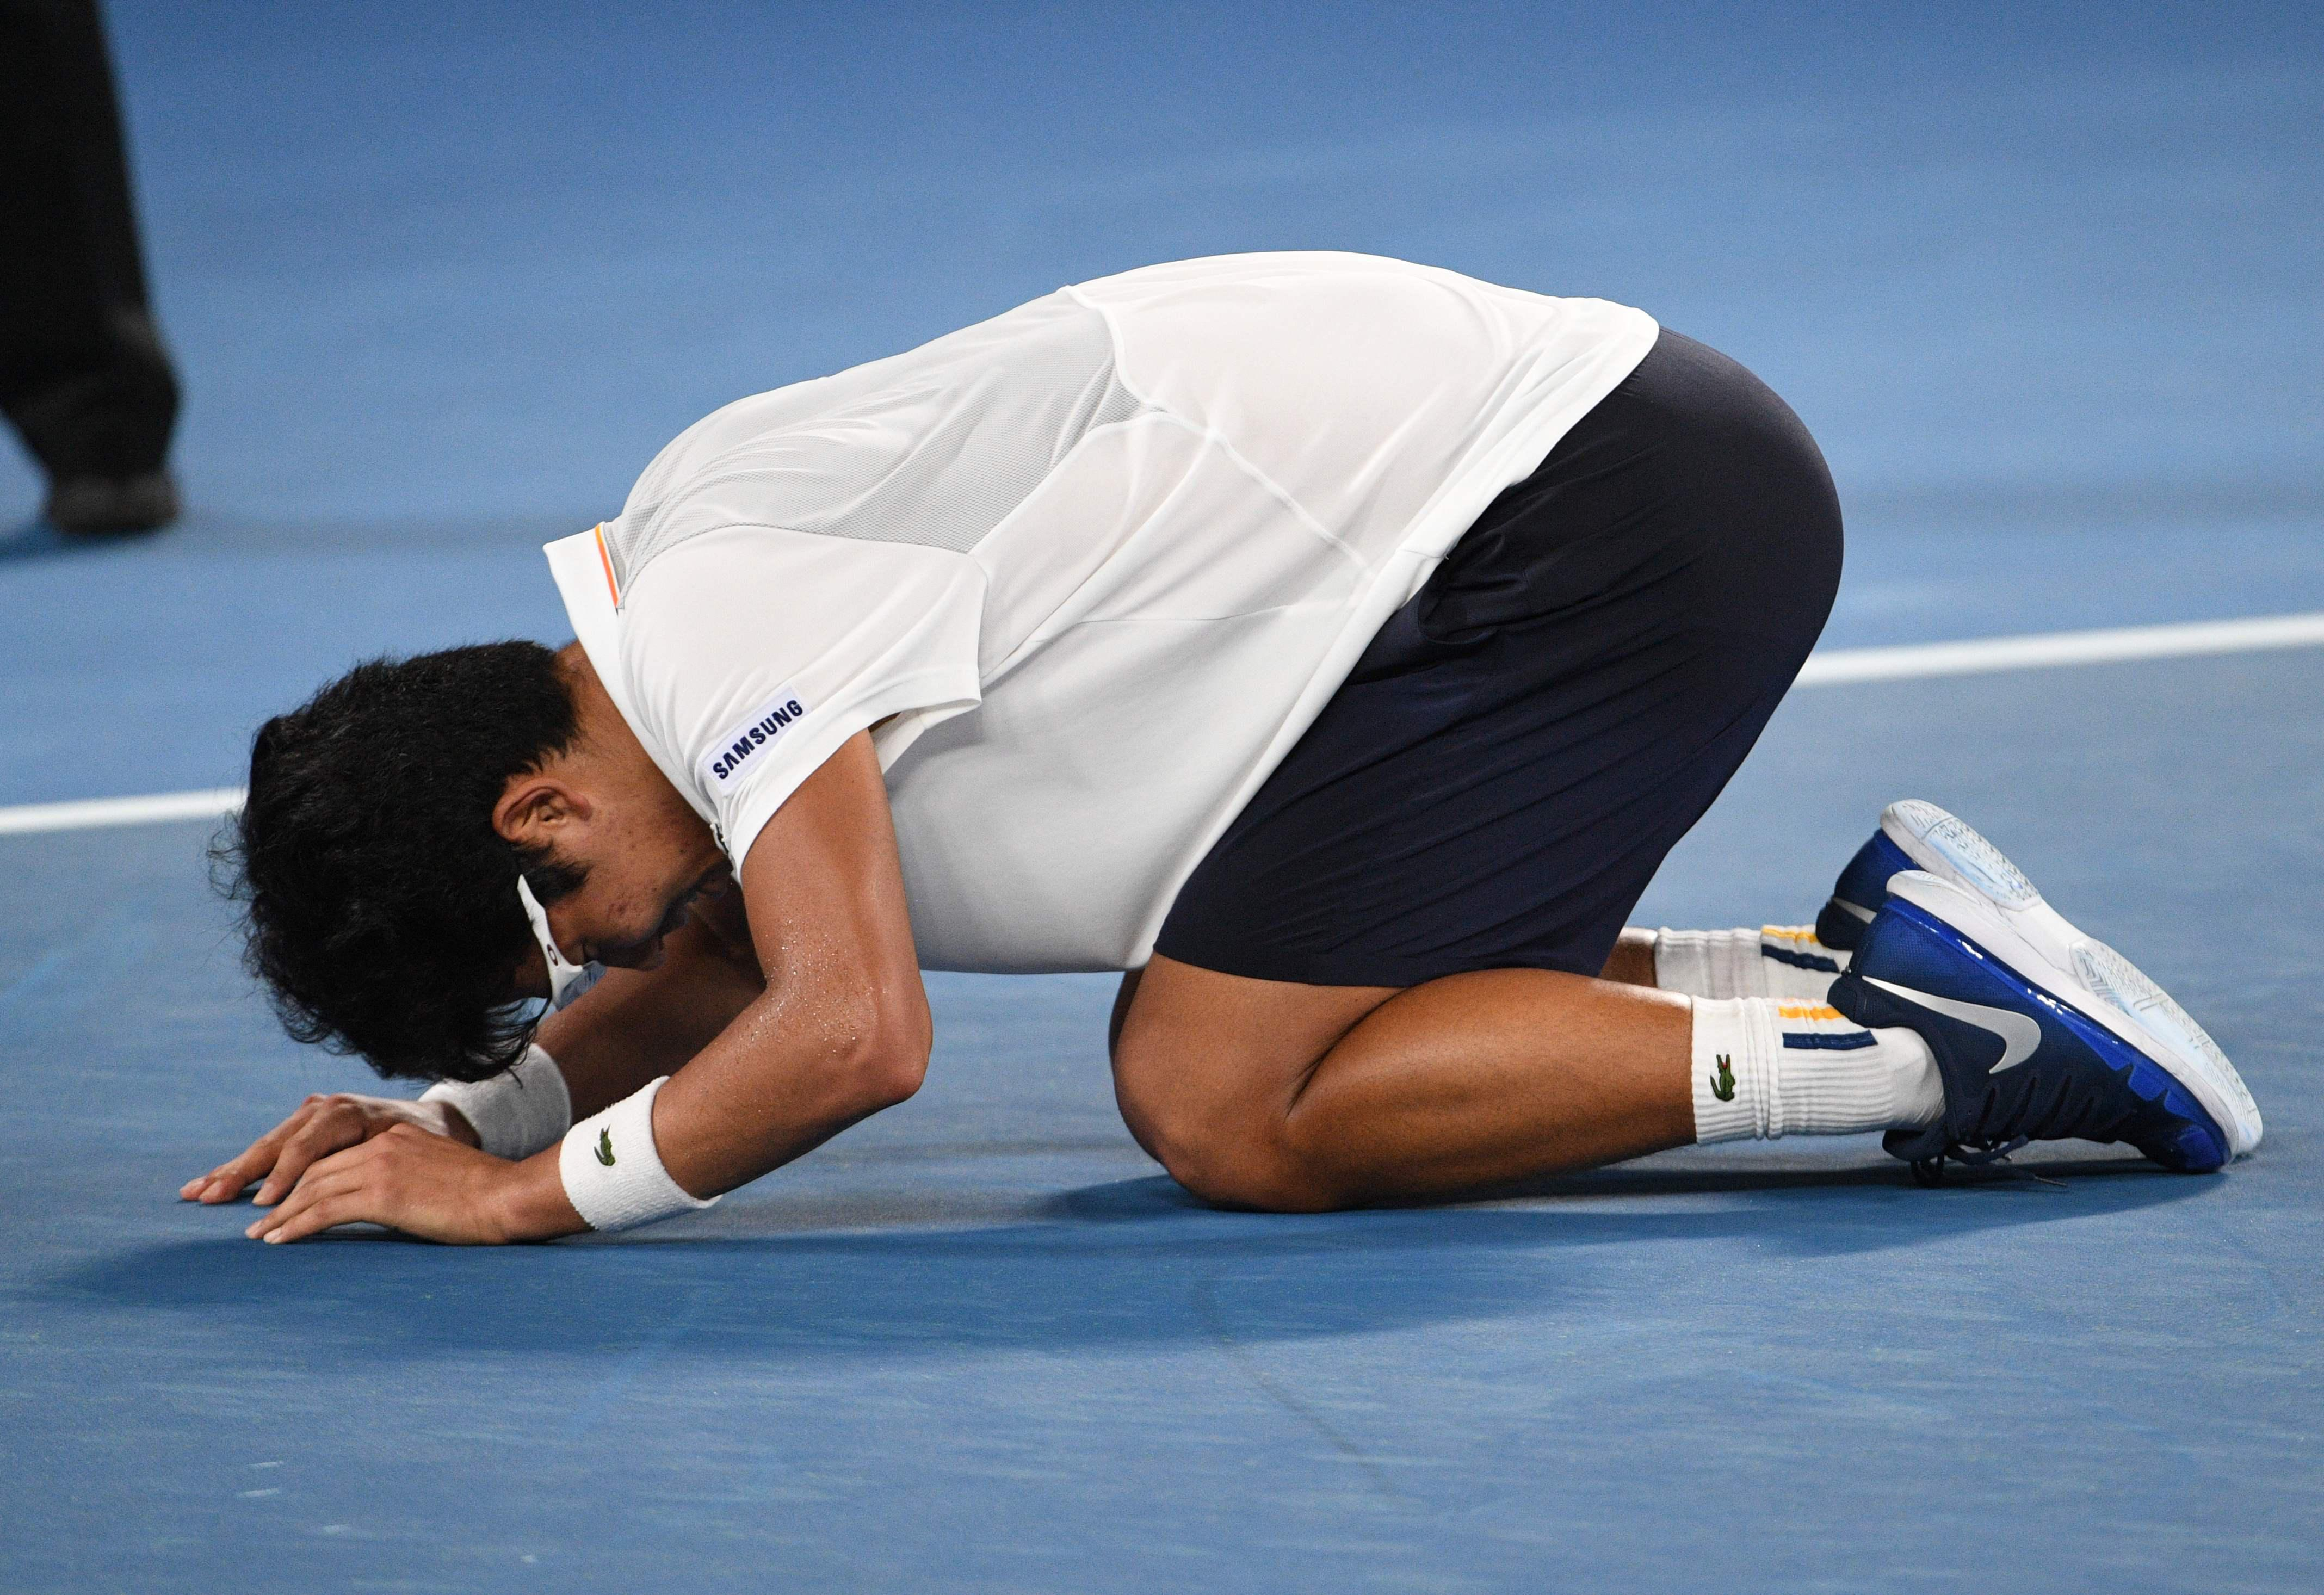 Chung Hyeon has shown some impressive performances at the Australian Open